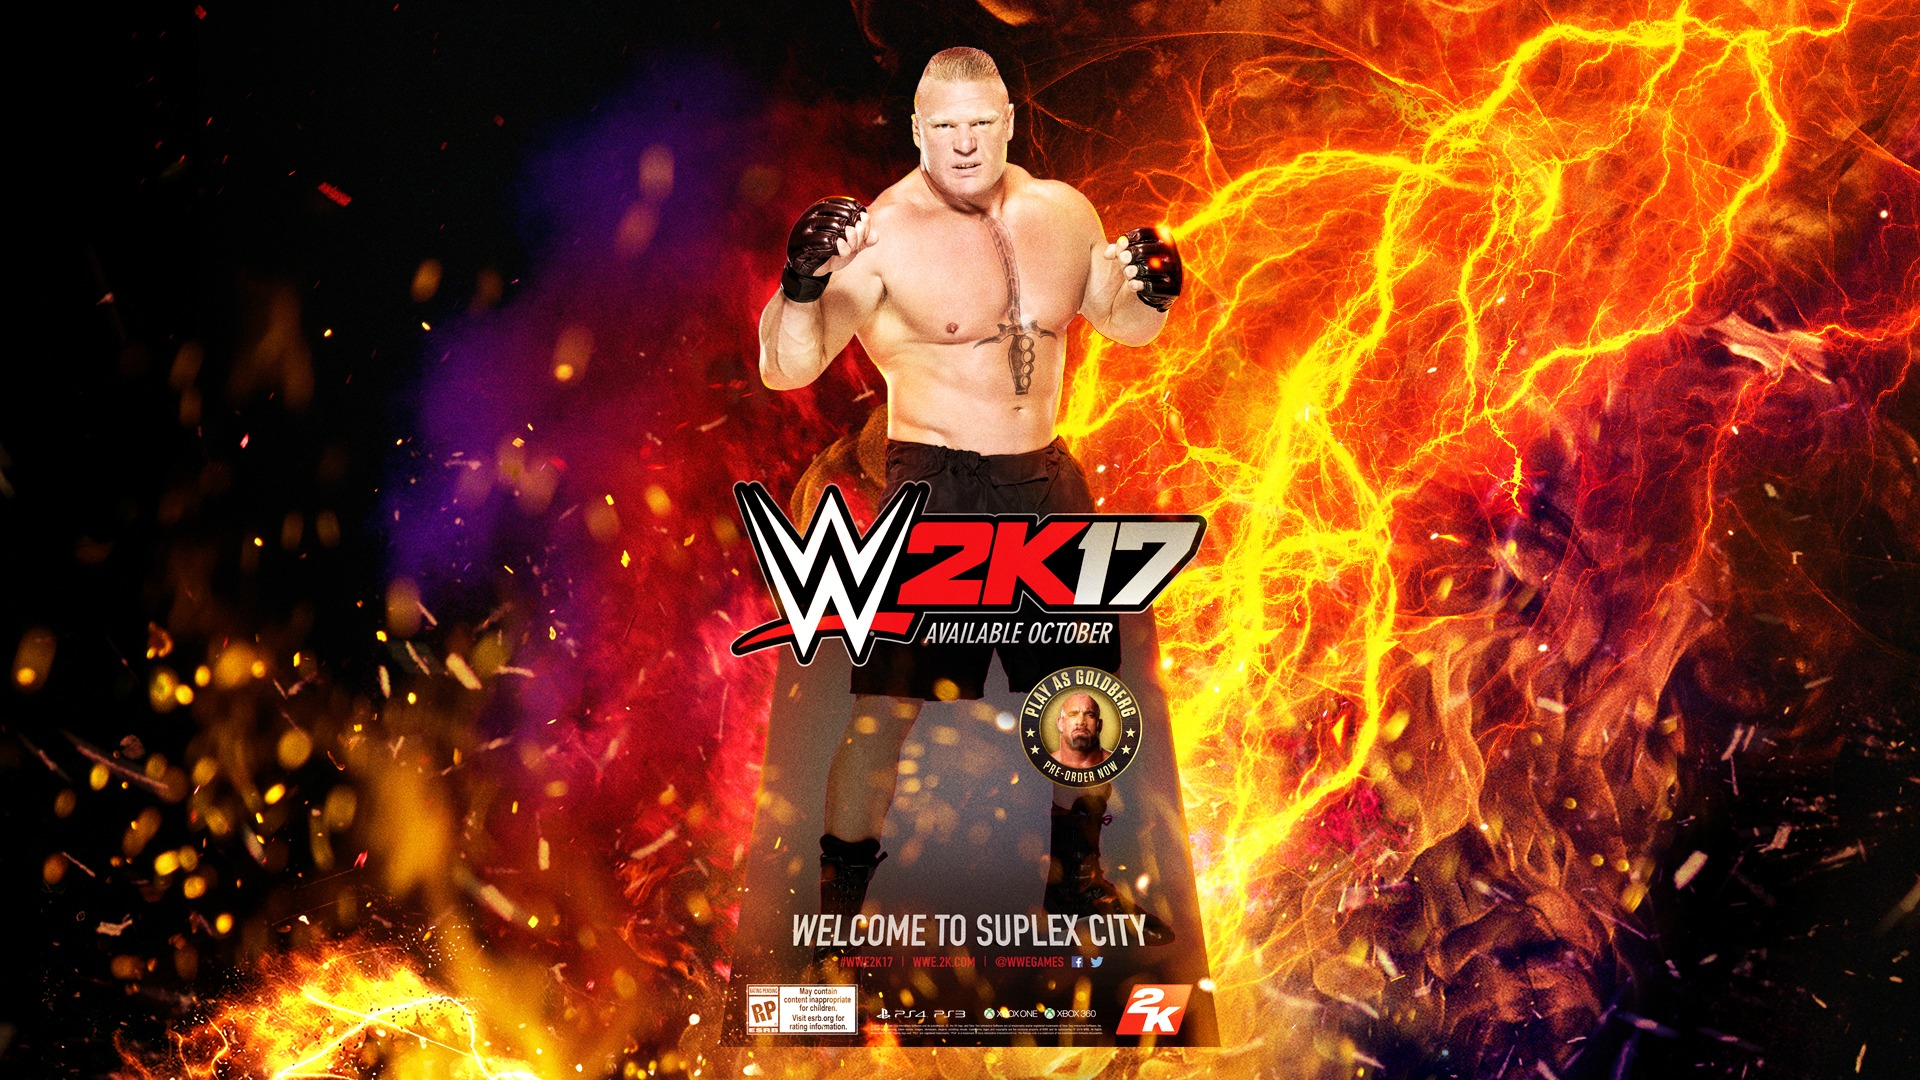 Wwe 2k17 Hd Wallpapers HD Wallpapers Download Free Images Wallpaper [1000image.com]